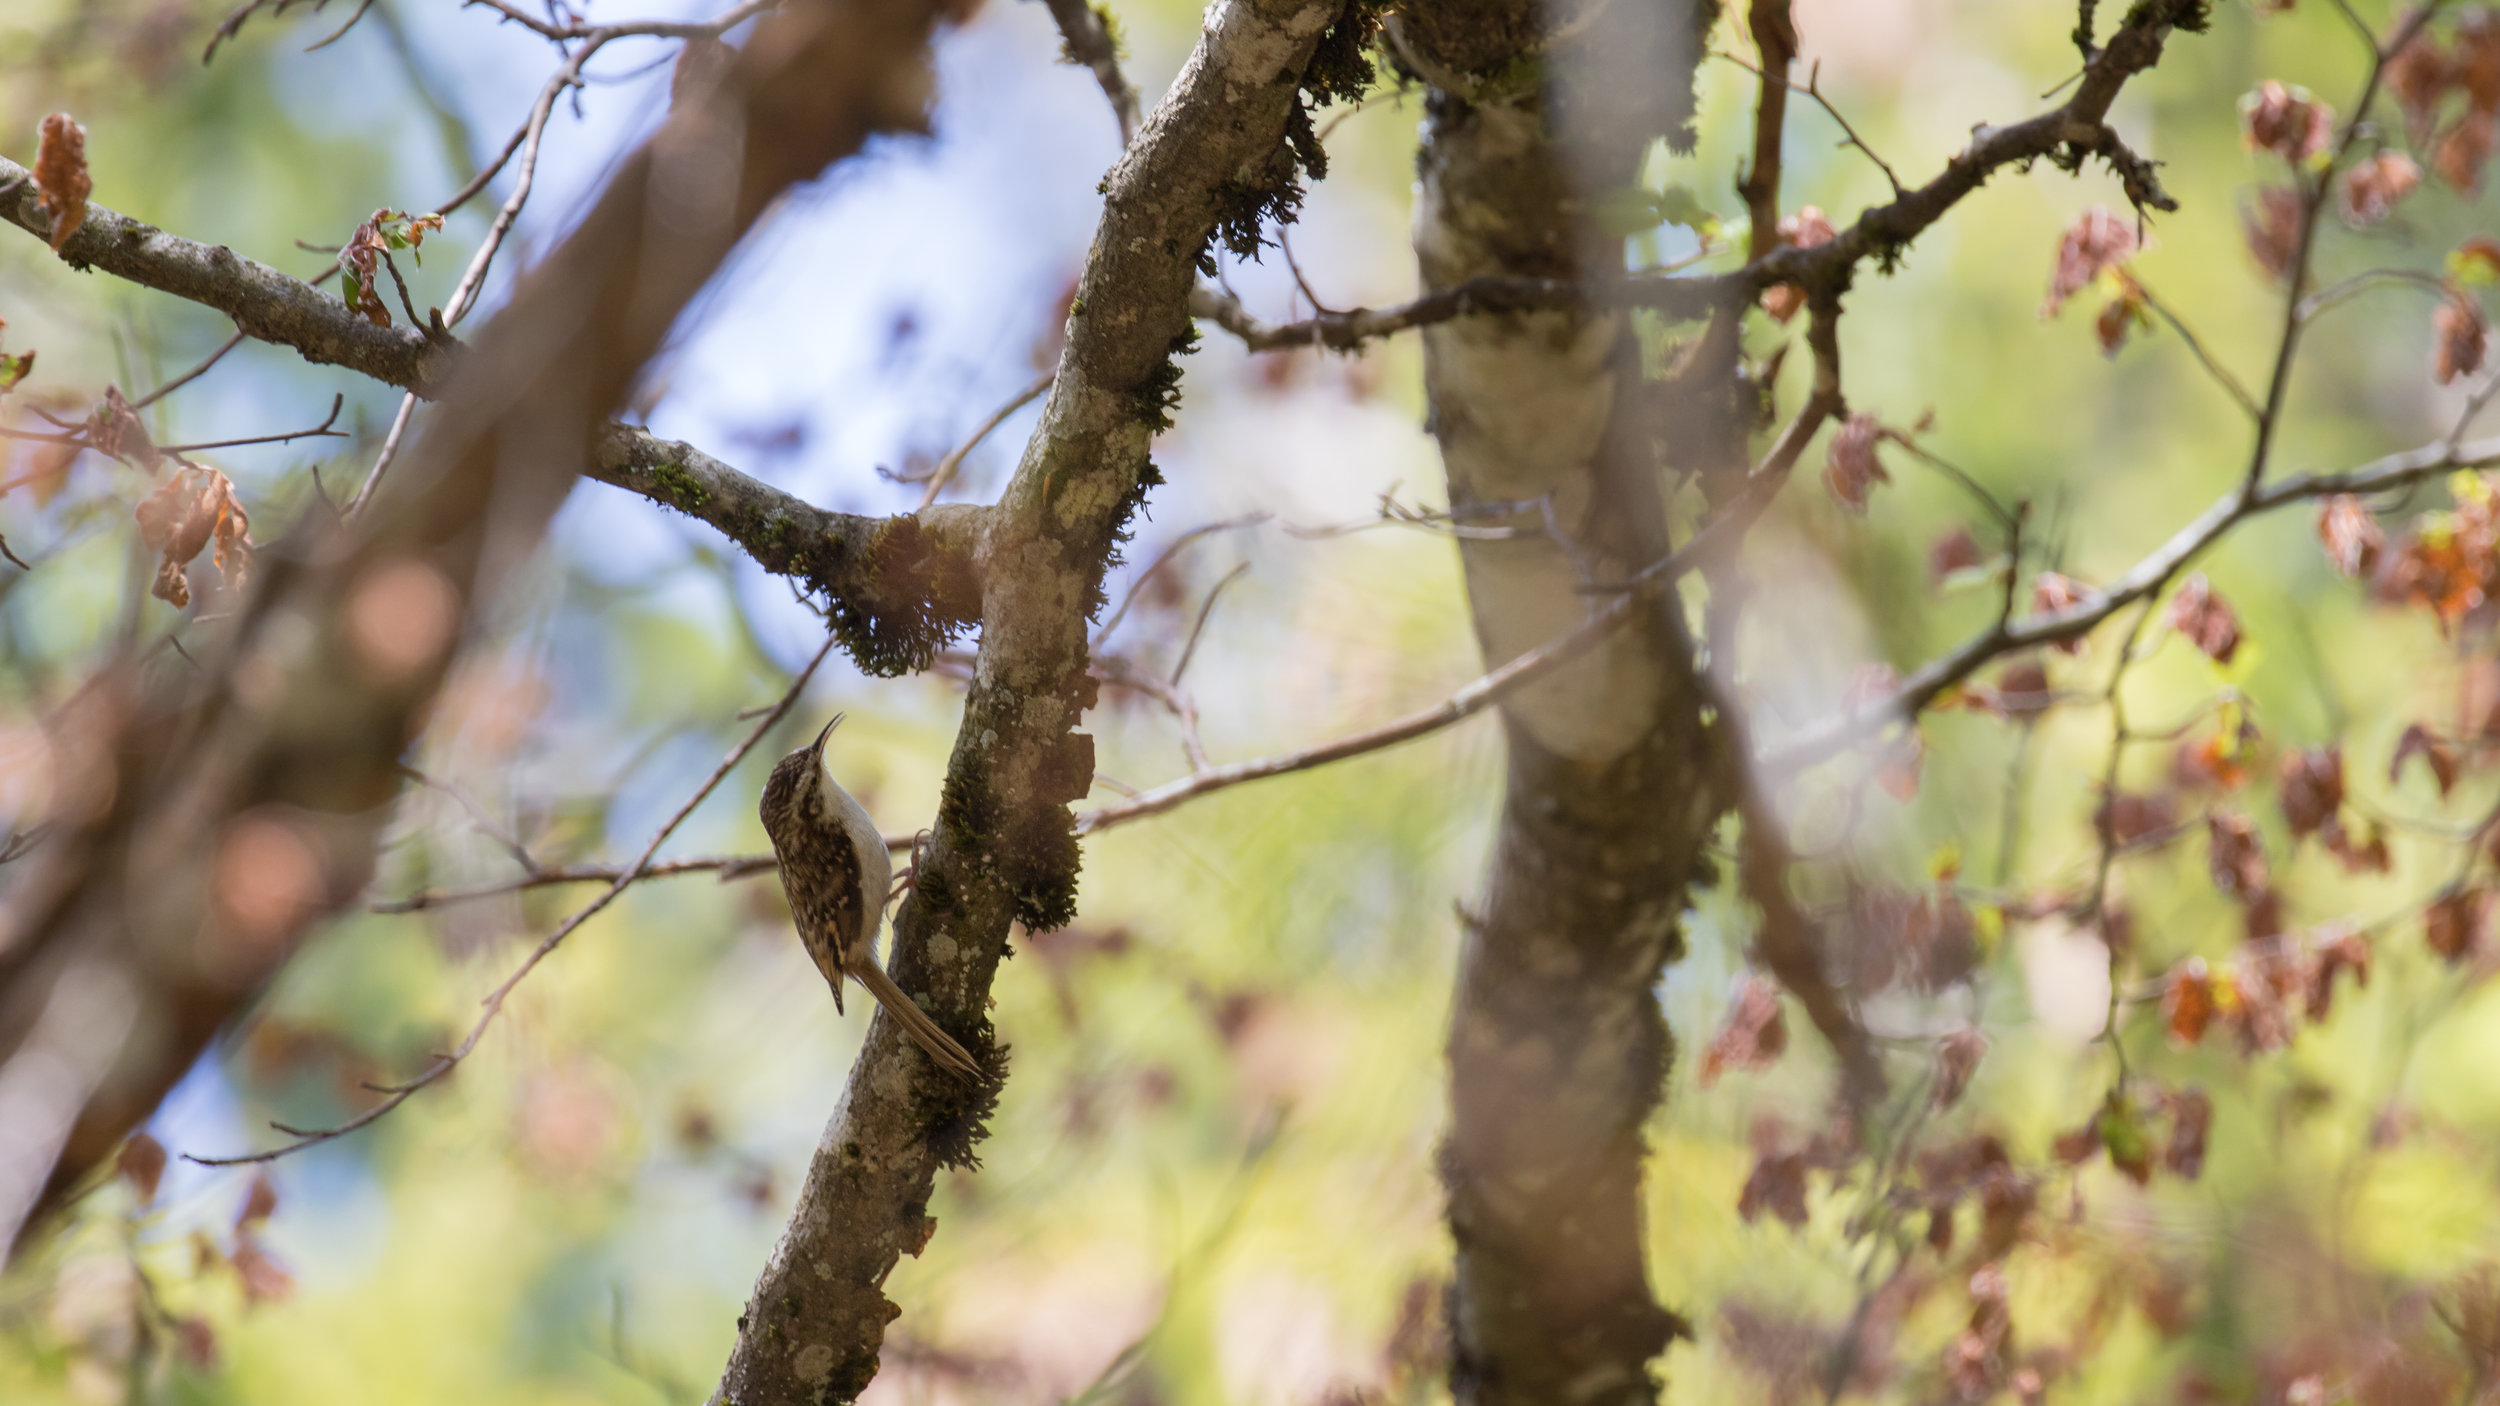 Eurasian Treecreeper (Certhia familiaris) in France. May 2019. Not baited. Not called in.